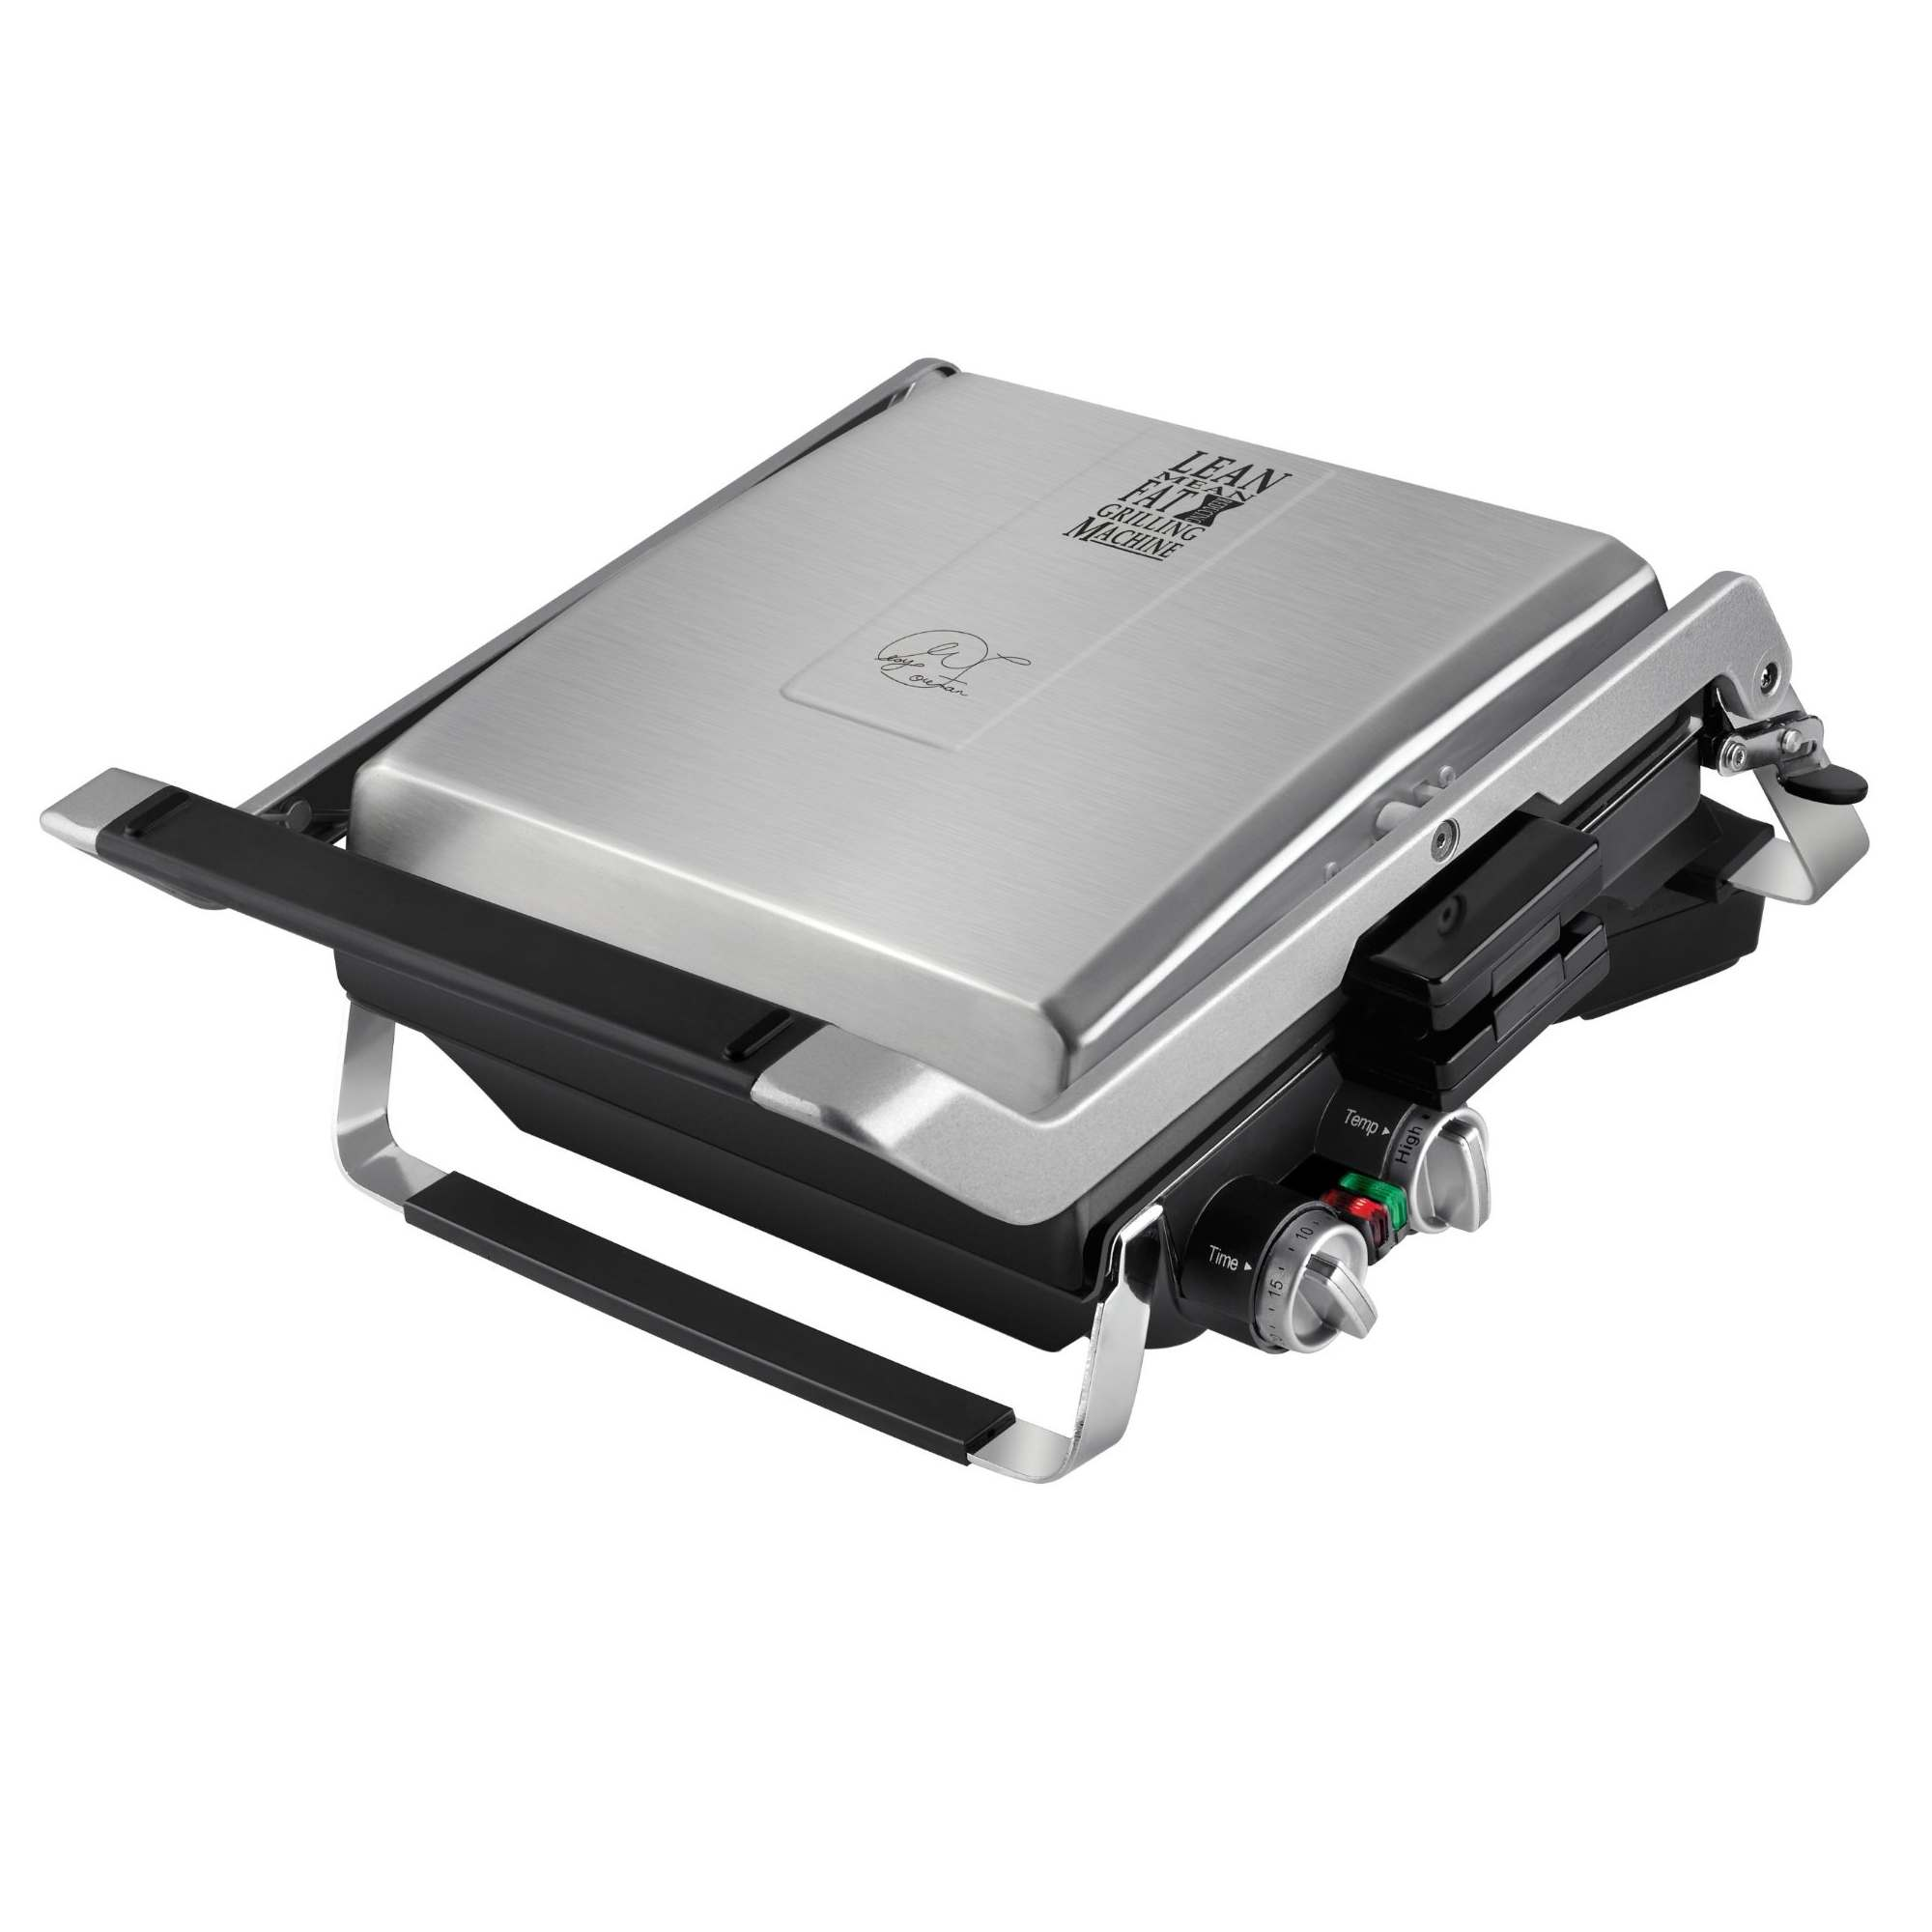 George Foreman GRP100 Stainless Steel Nonstick Countertop Grill